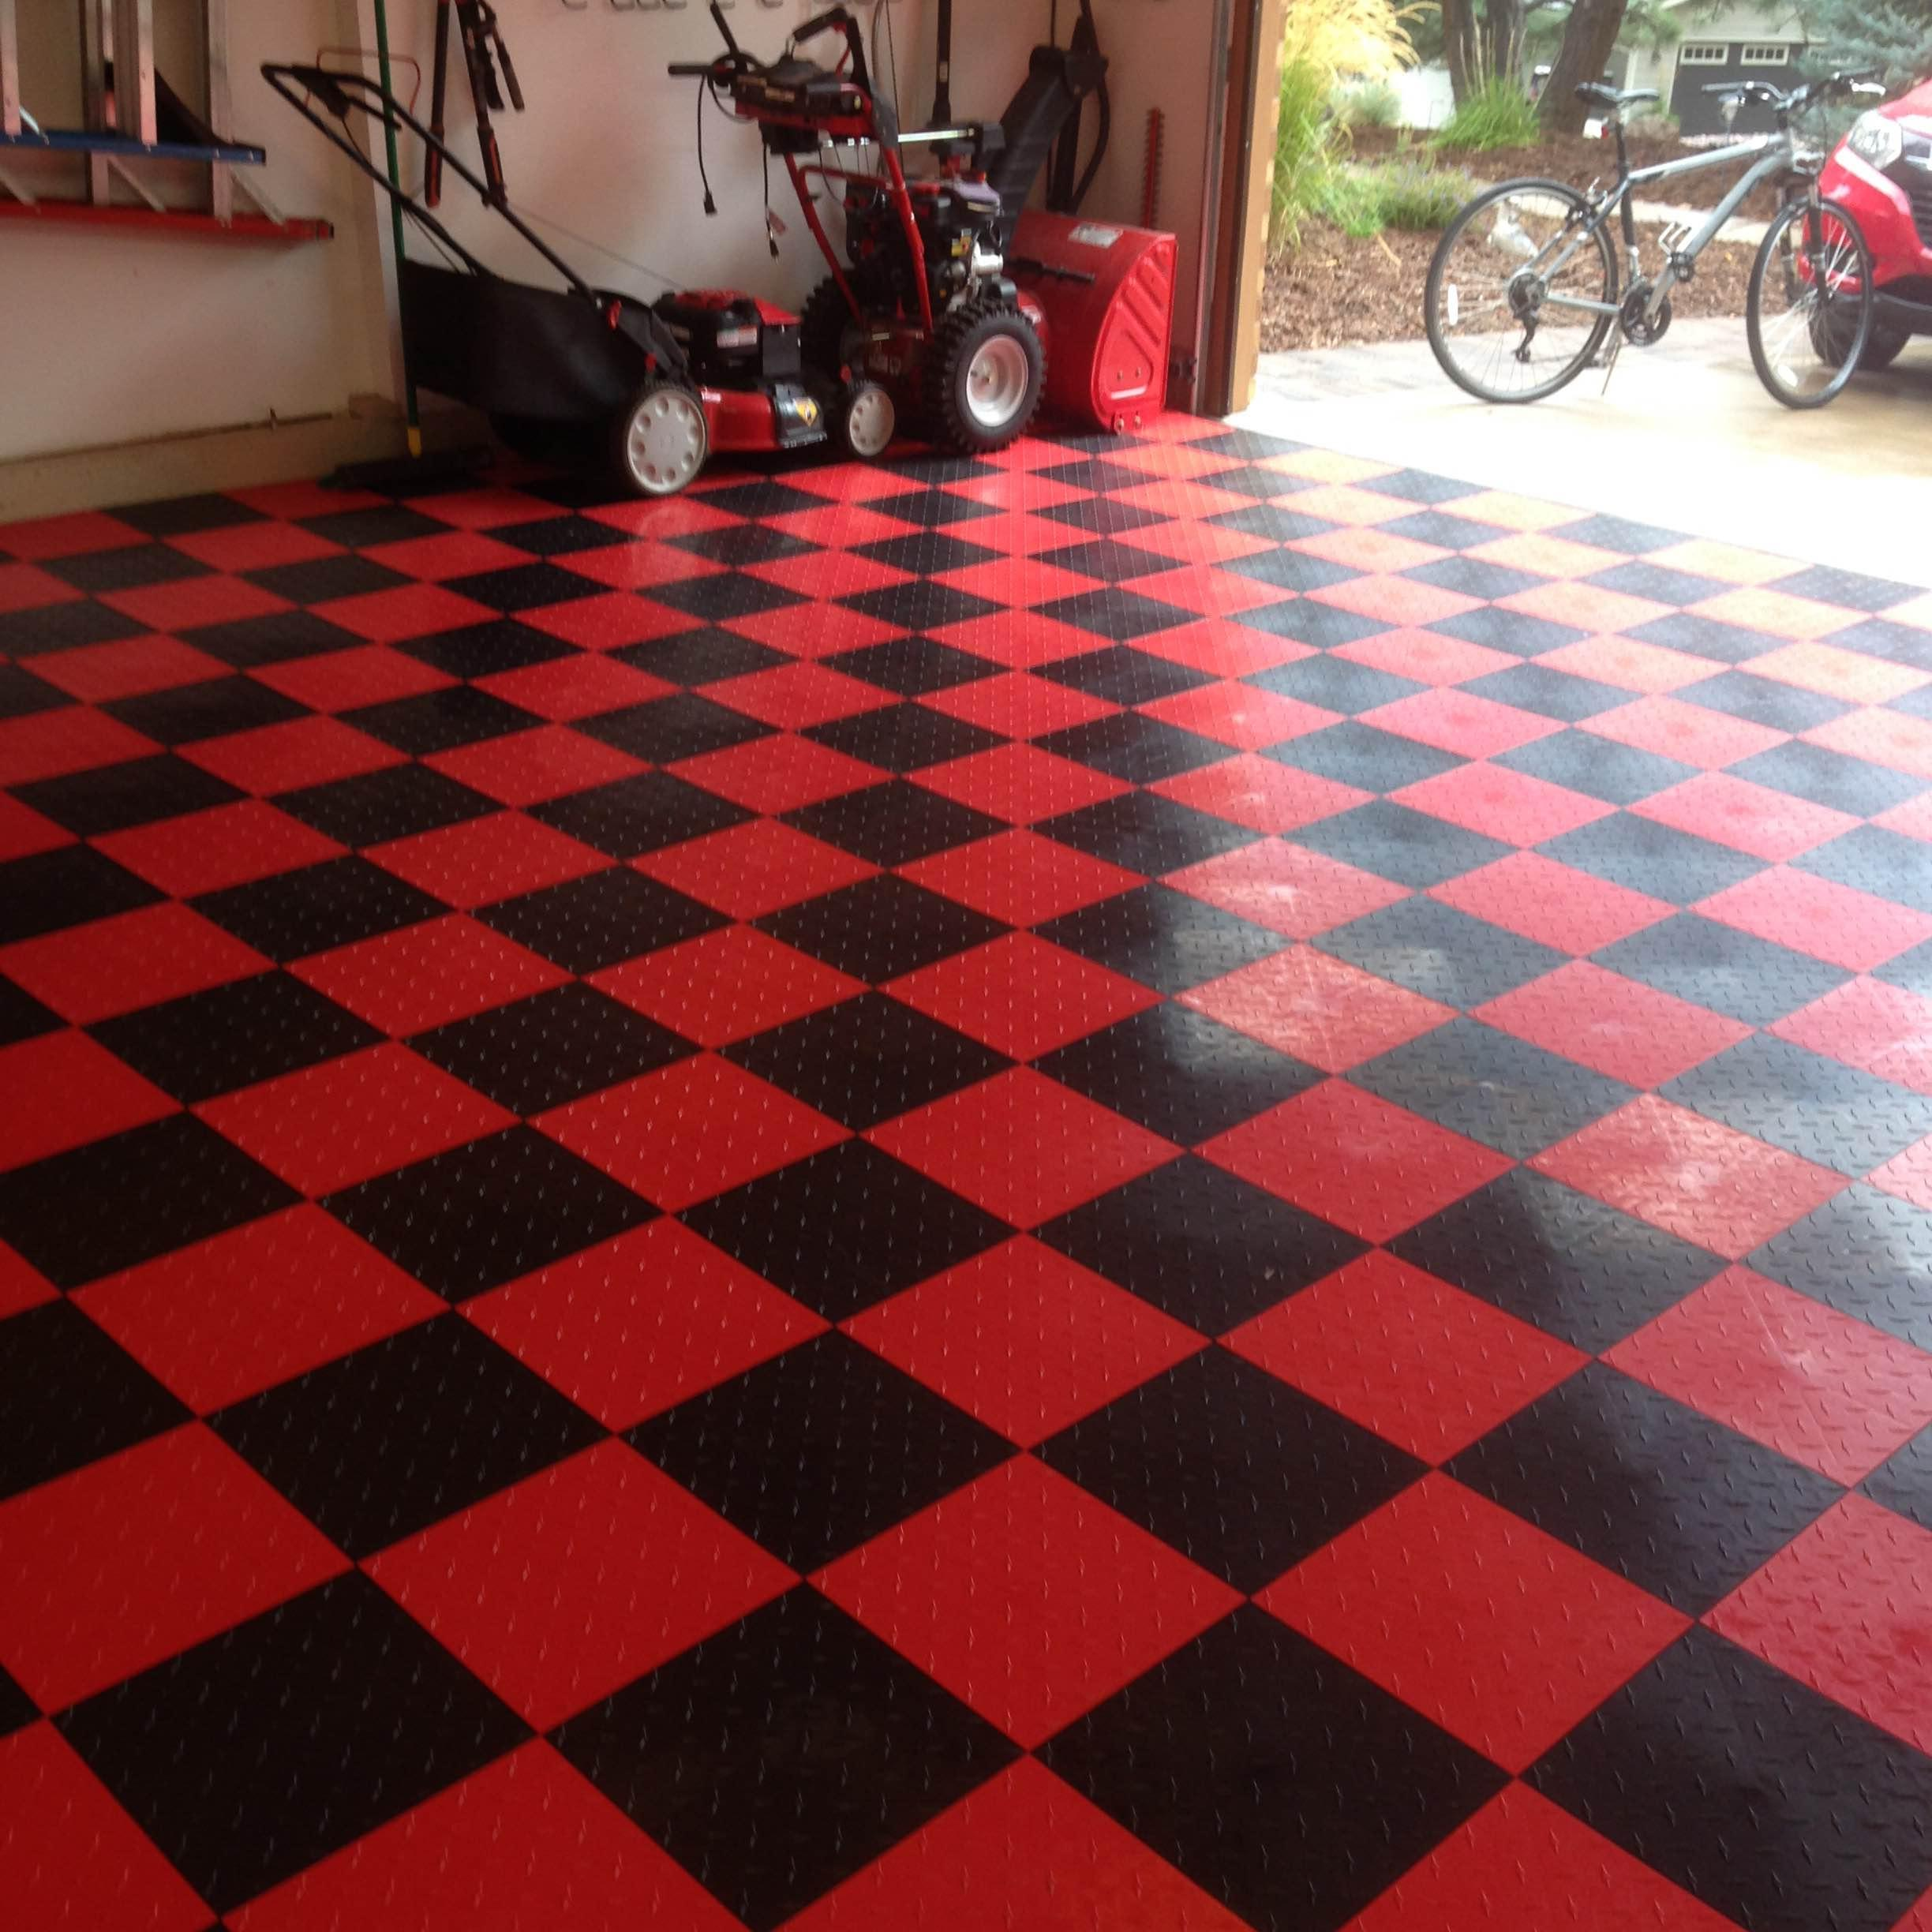 Garage Flooring Tiles Amazon Home Decor